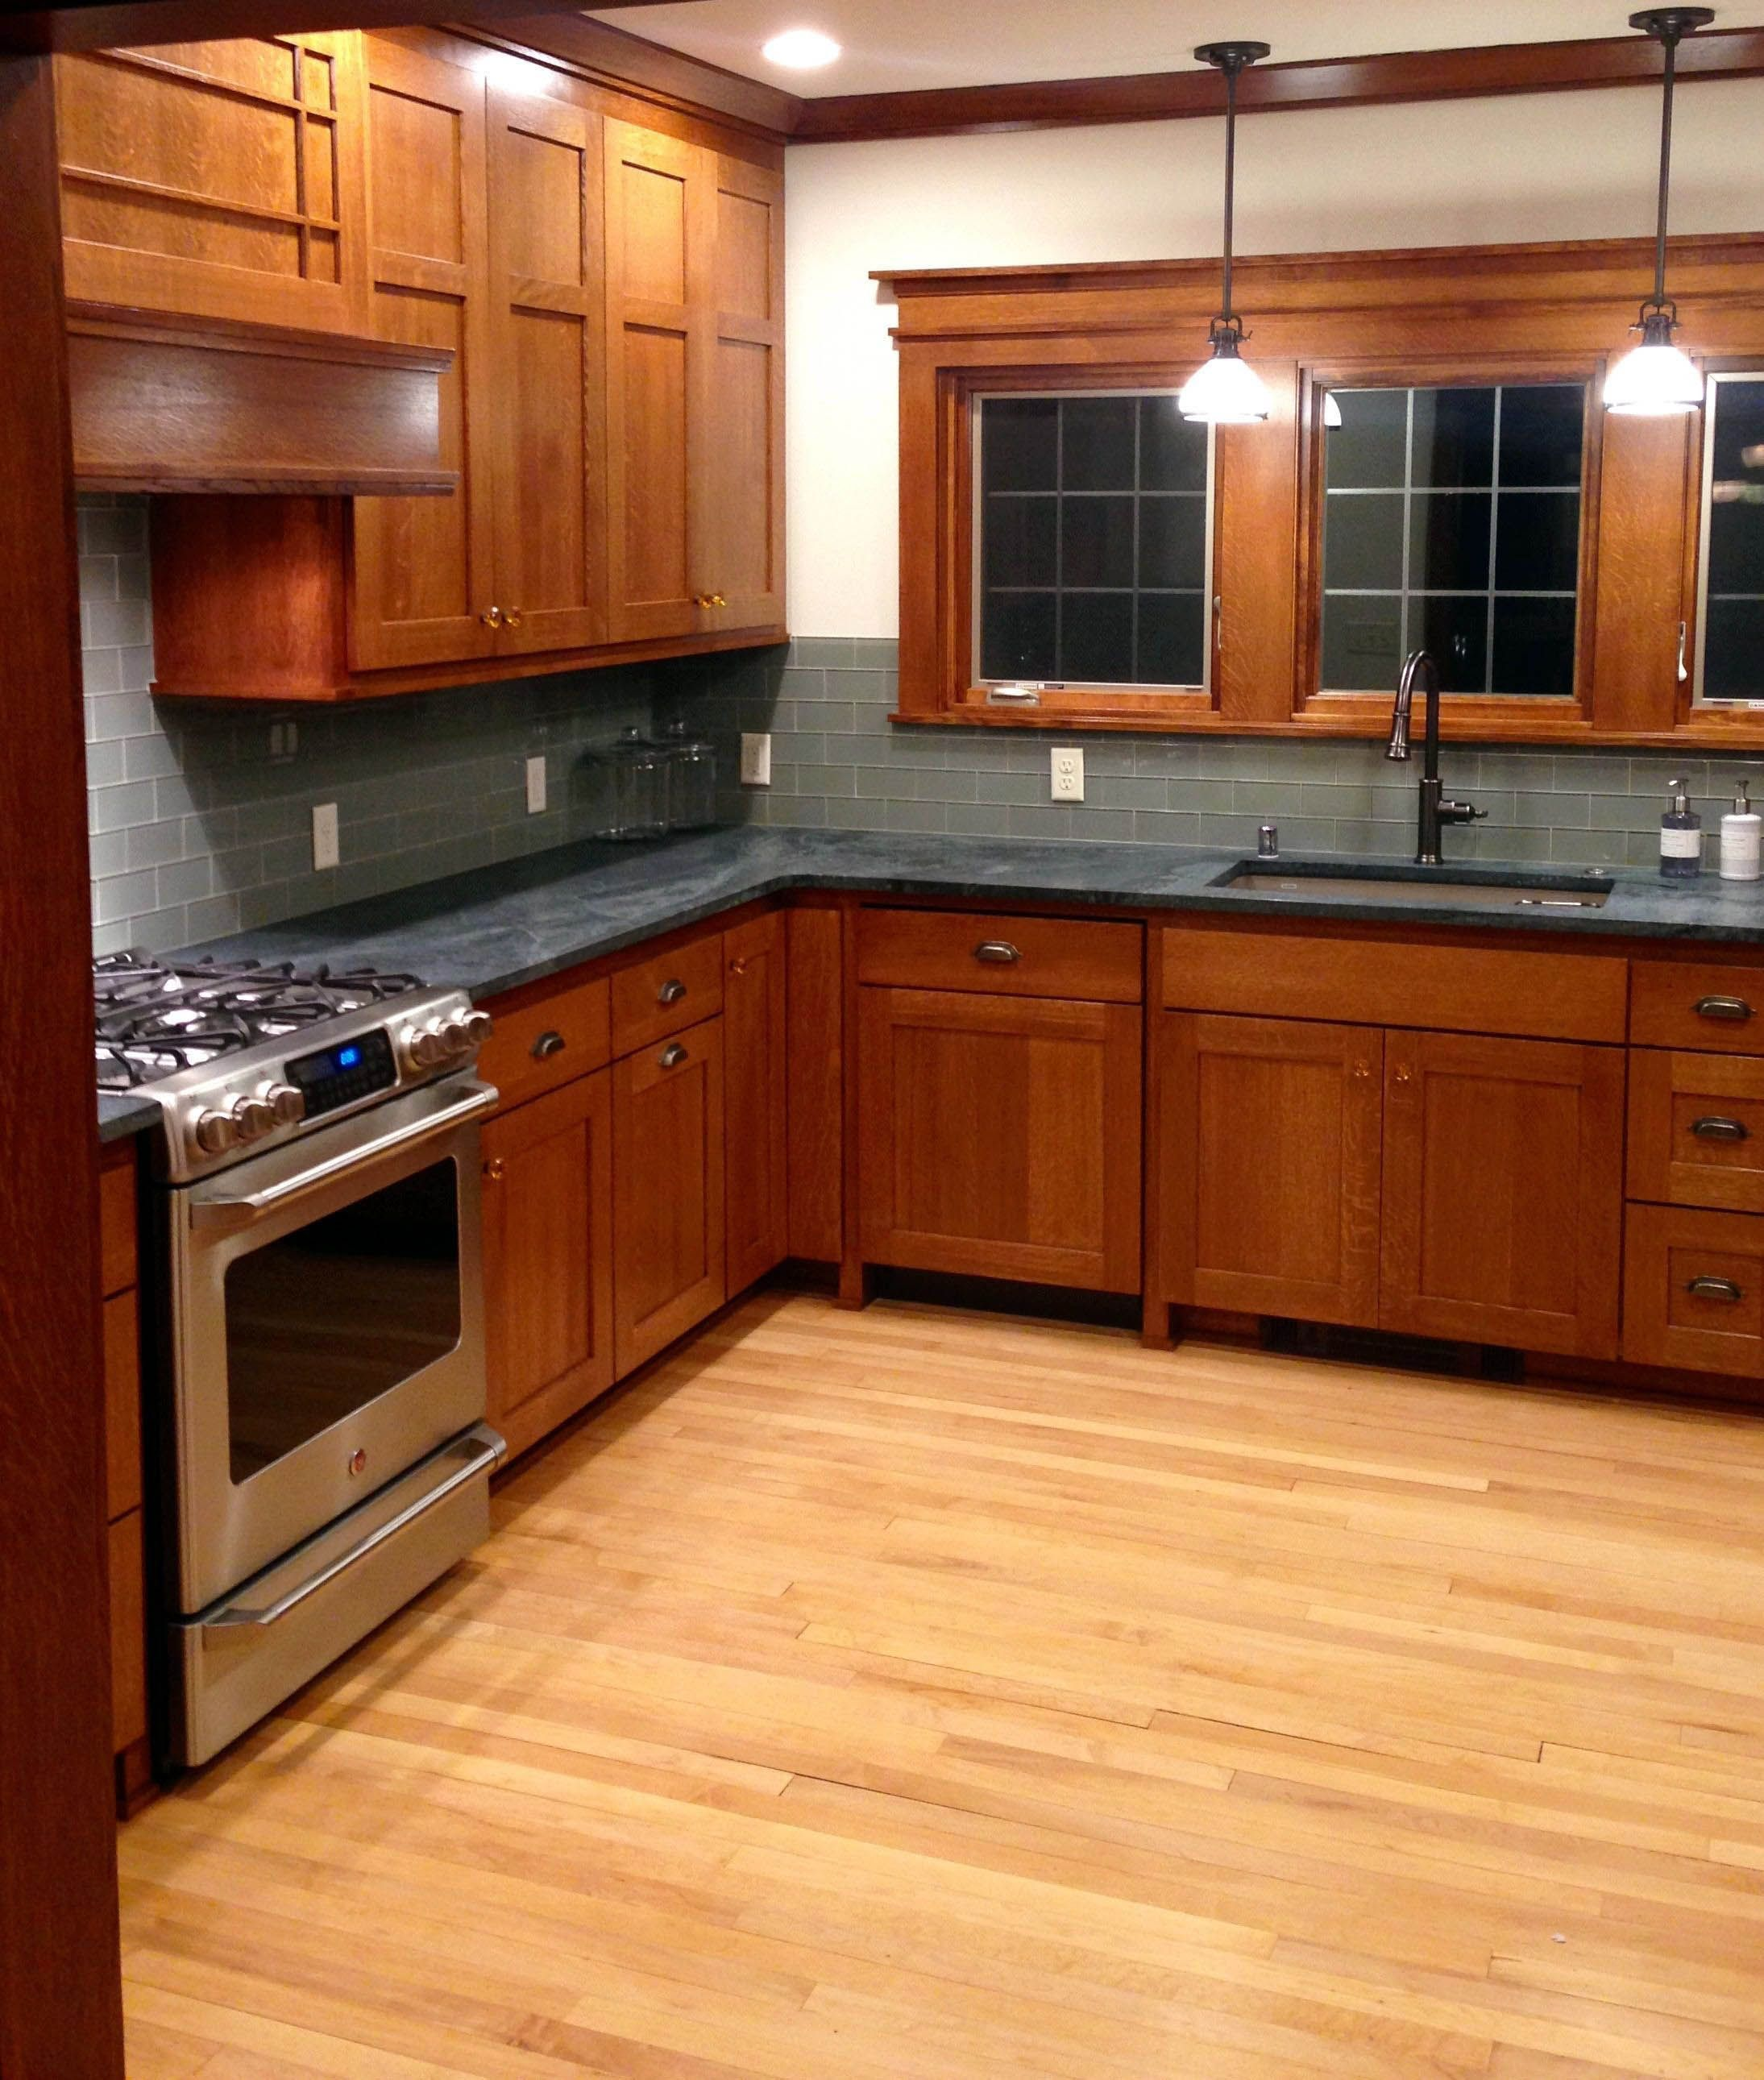 Advanced Kitchen Cabinet Doors Images That Will Impress You Simple Kitchen Remodel Kitchen Remodel Layout Kitchen Remodel Cost